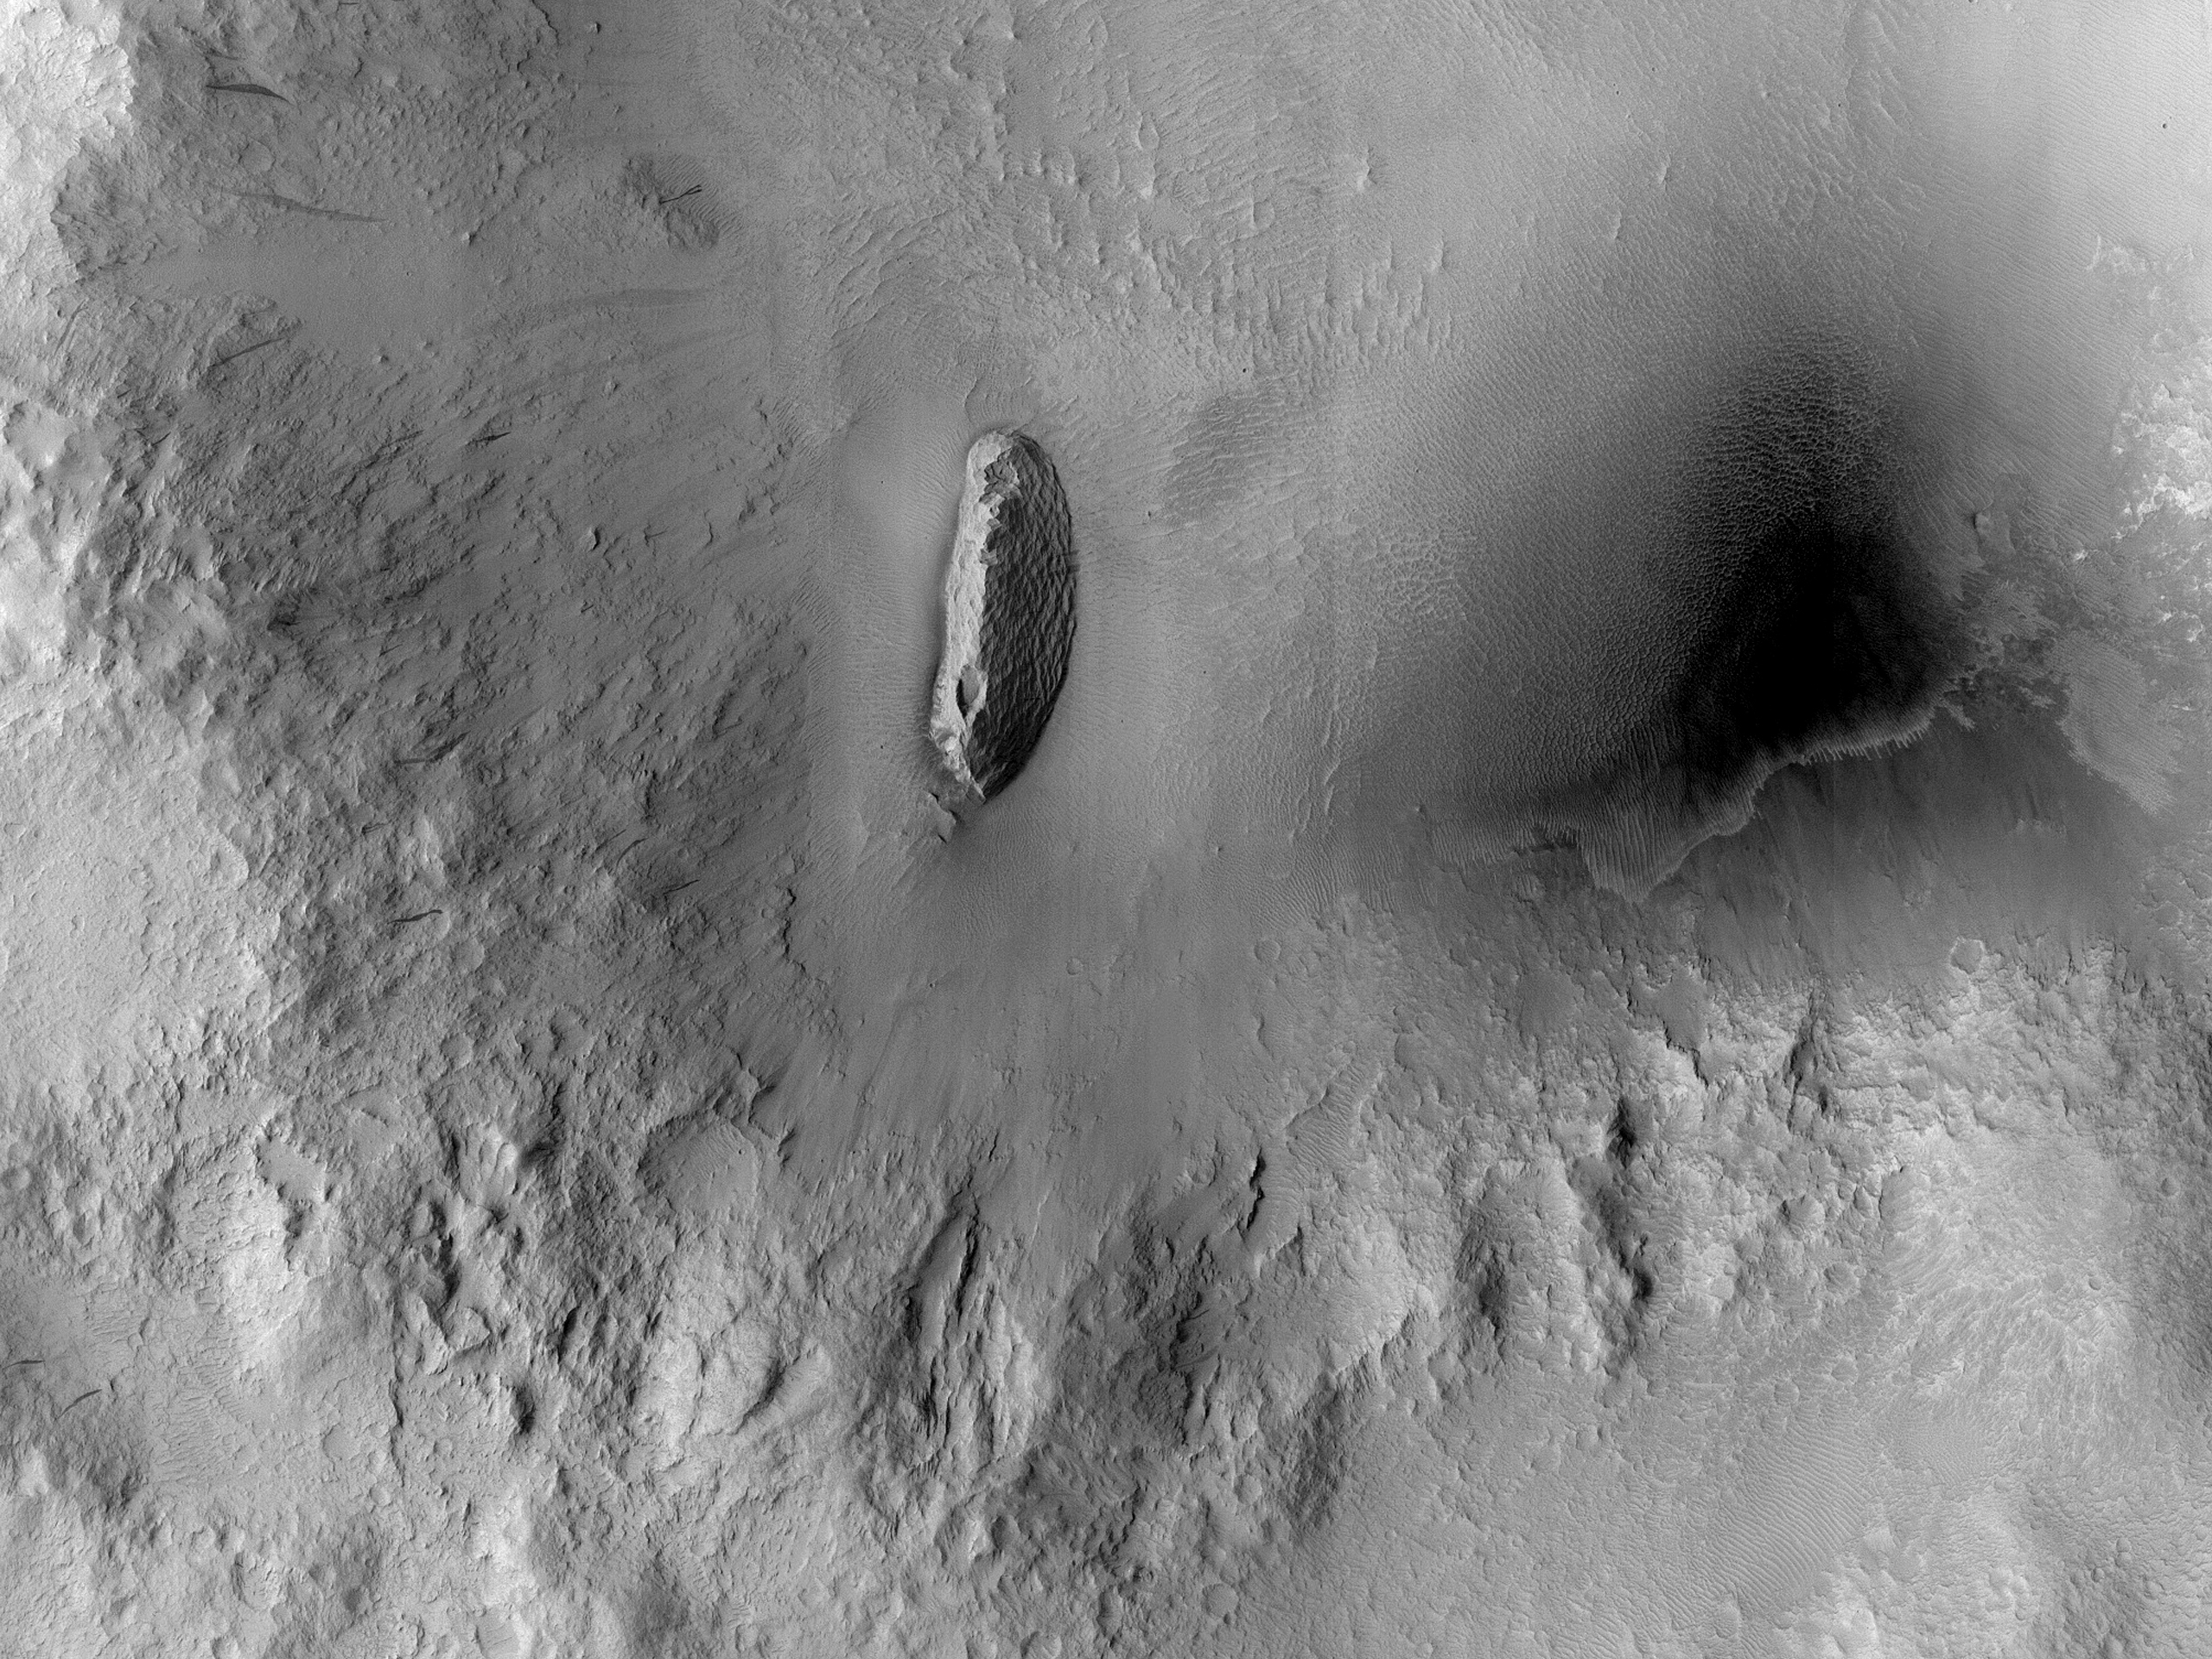 A Textured Ridge within a Crater